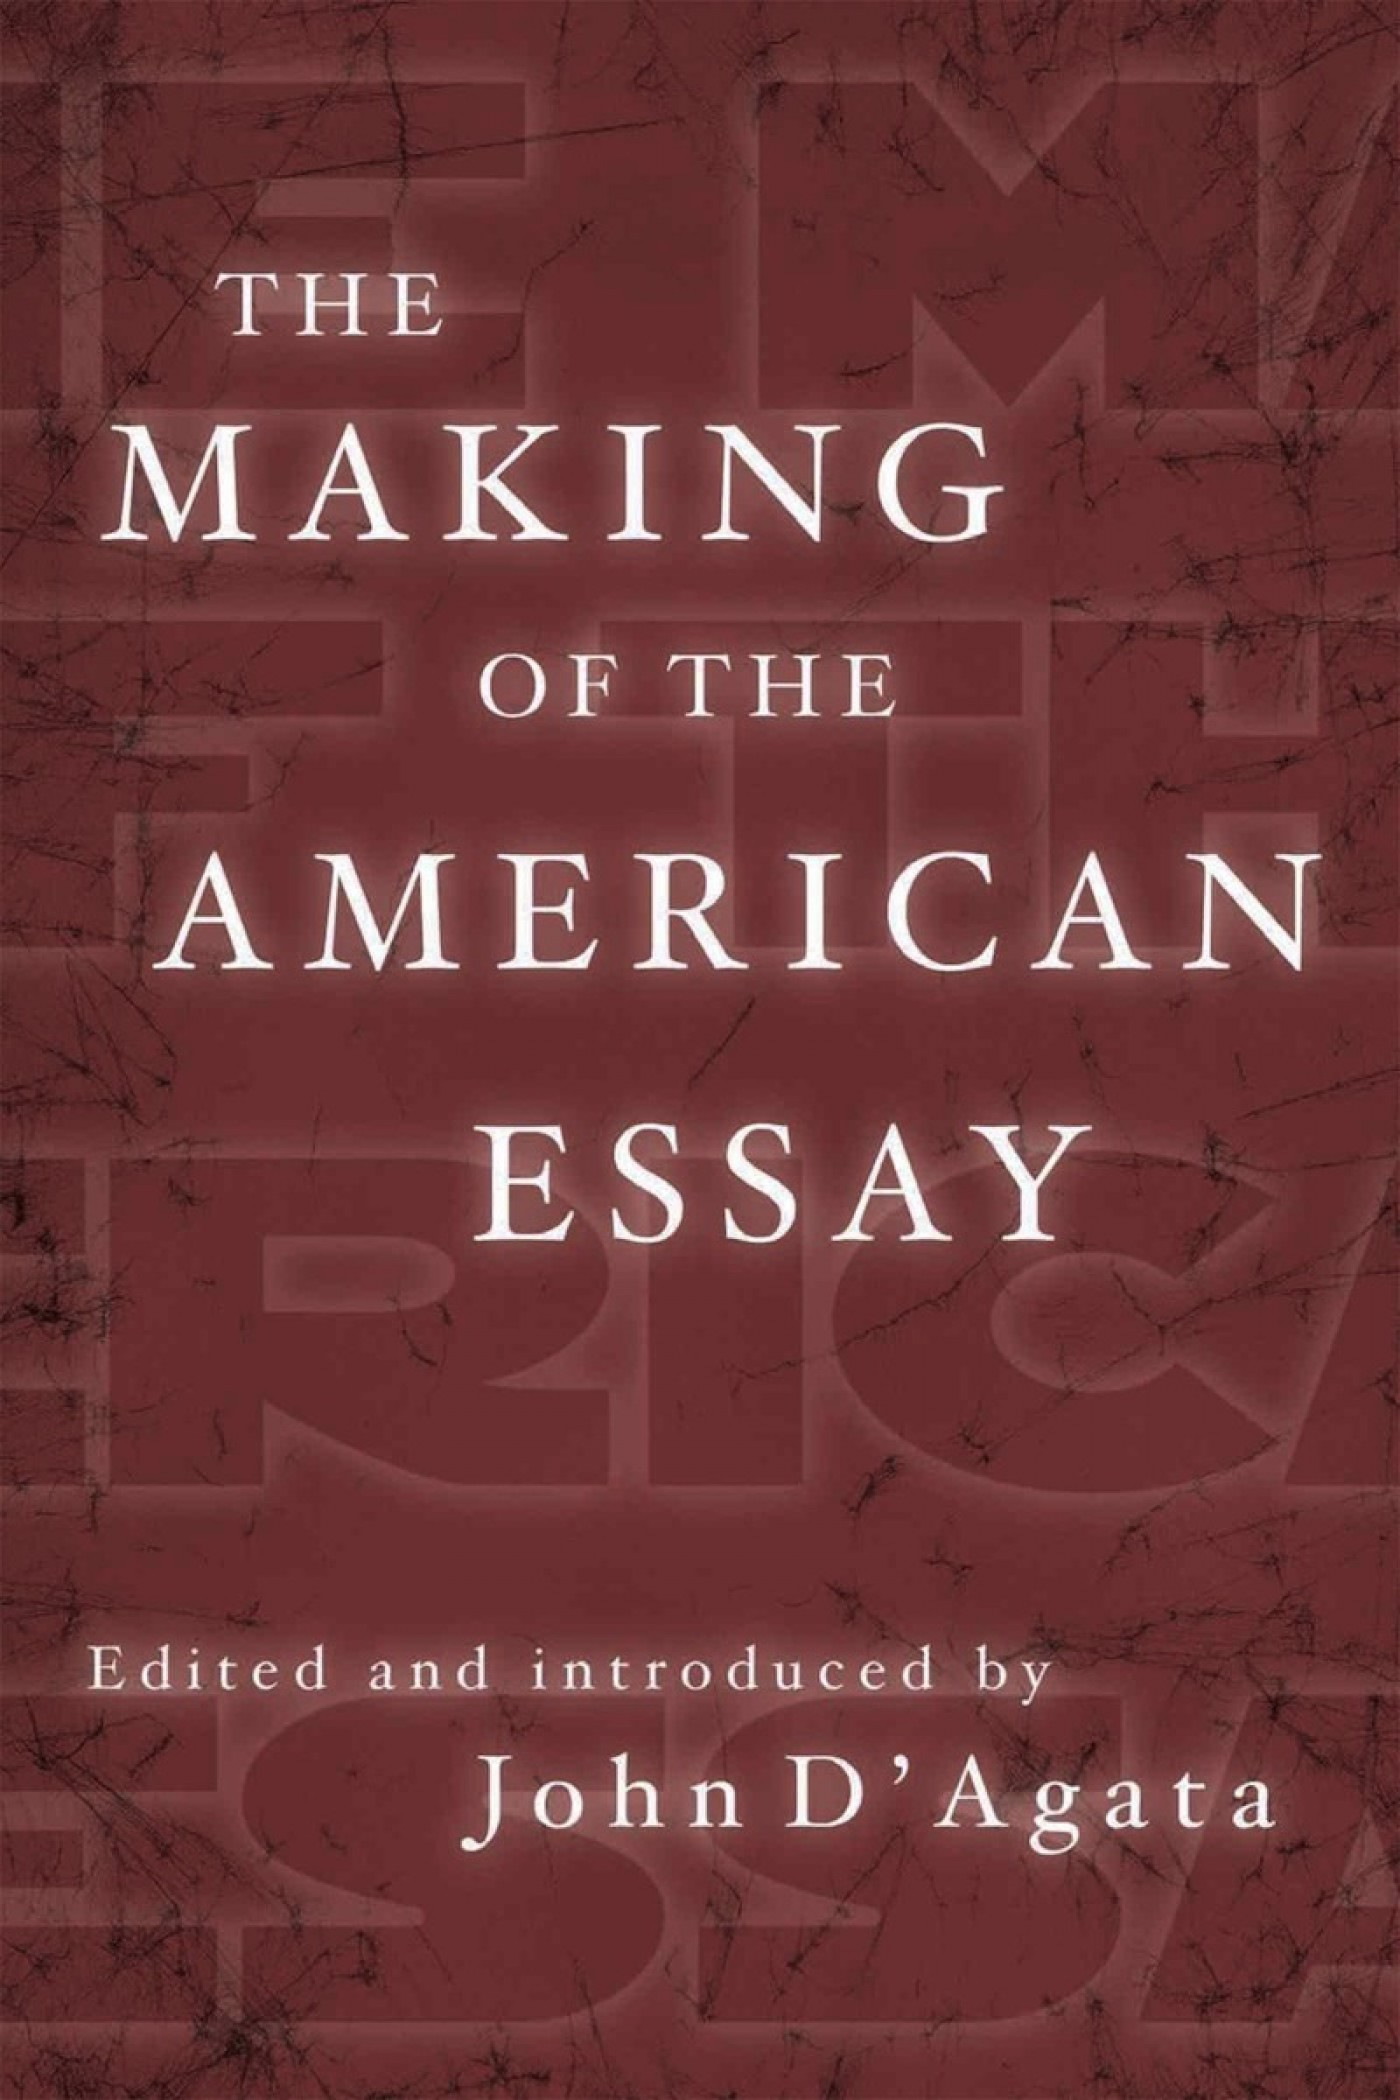 003 Essay Example Makingamericanessay John Stirring D Agata D'agata The Next American Pdf 1400